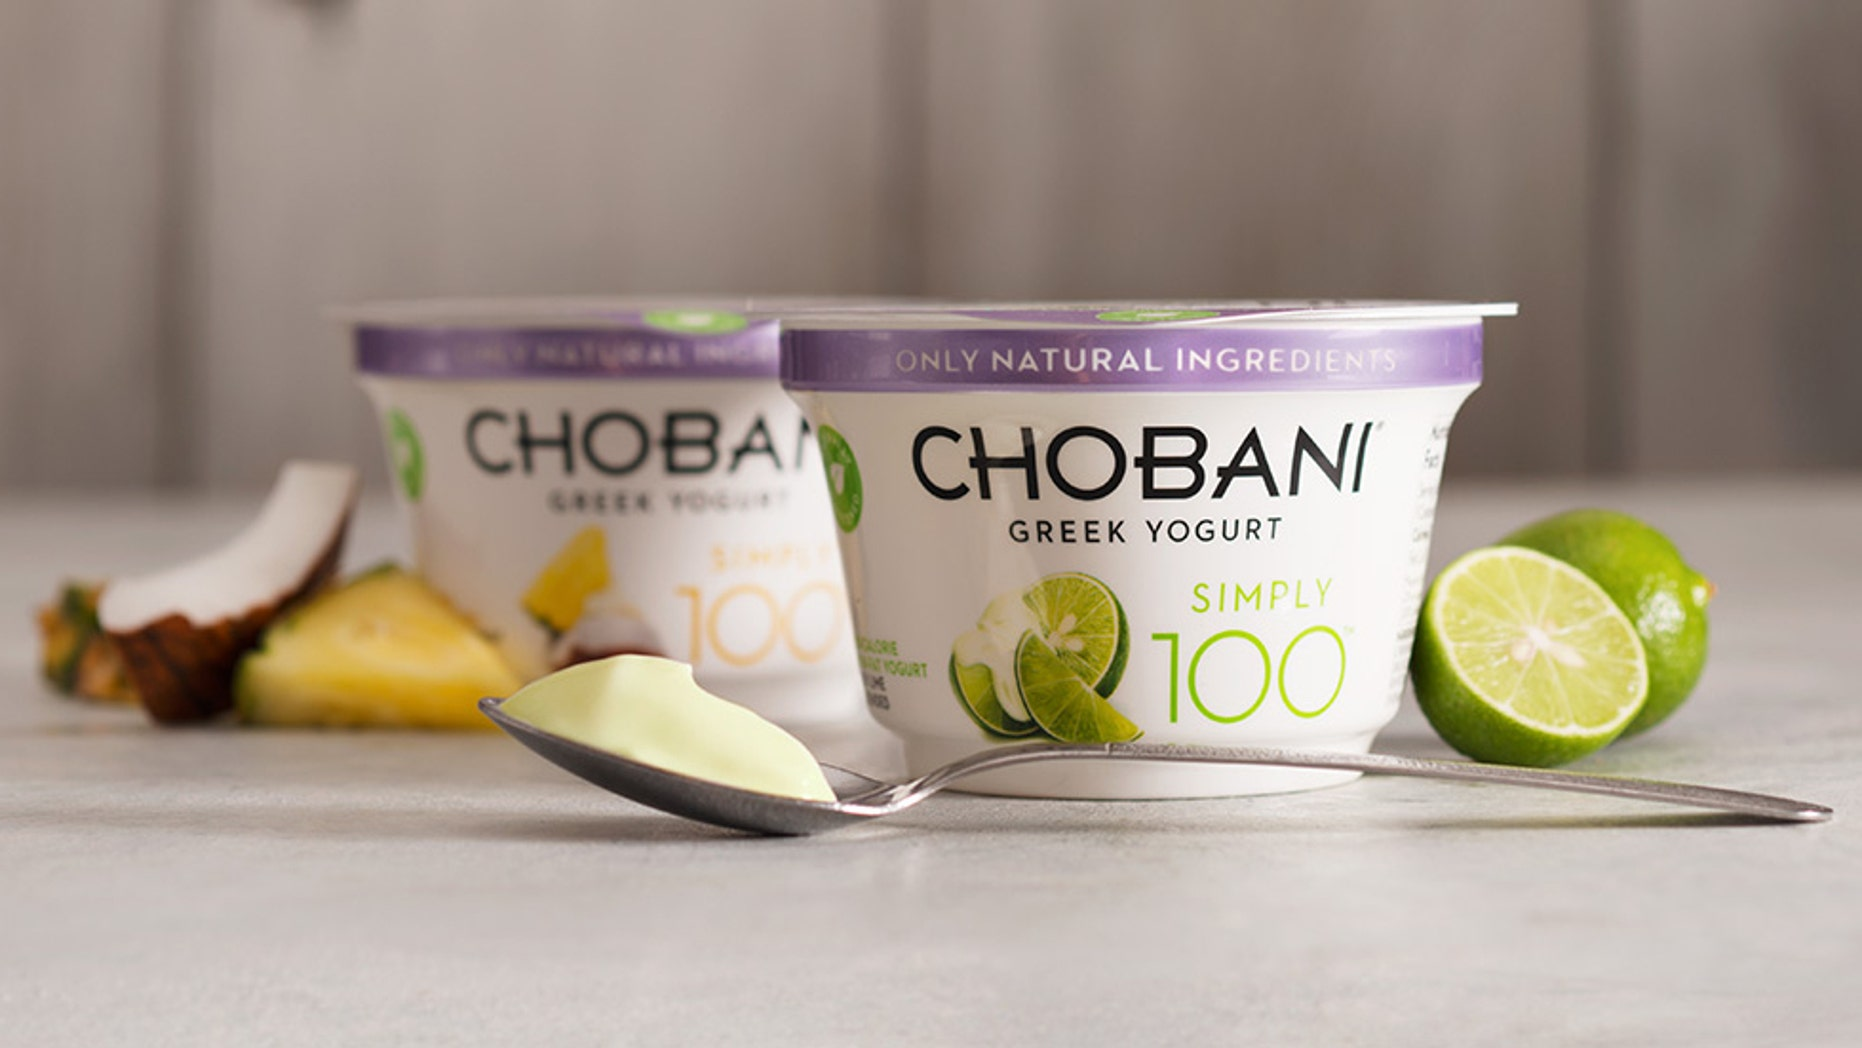 The Greek yogurt giant is opening its doors to other innovative food companies.